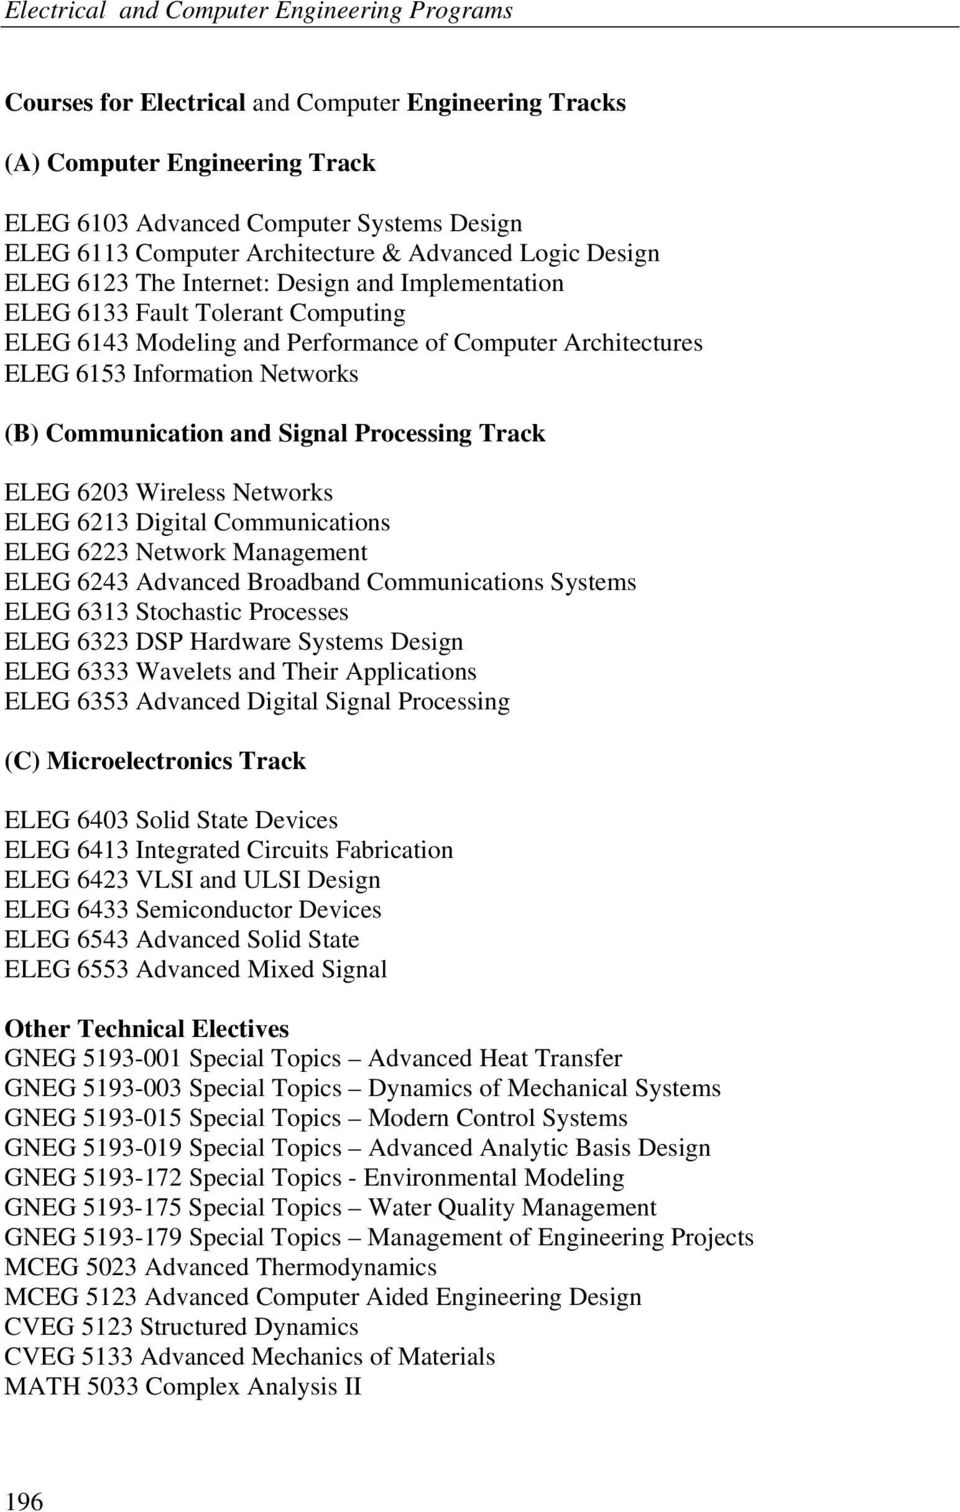 Processing Track ELEG 6203 Wireless Networks ELEG 6213 Digital Communications ELEG 6223 Network Management ELEG 6243 Advanced Broadband Communications Systems ELEG 6313 Stochastic Processes ELEG 6323